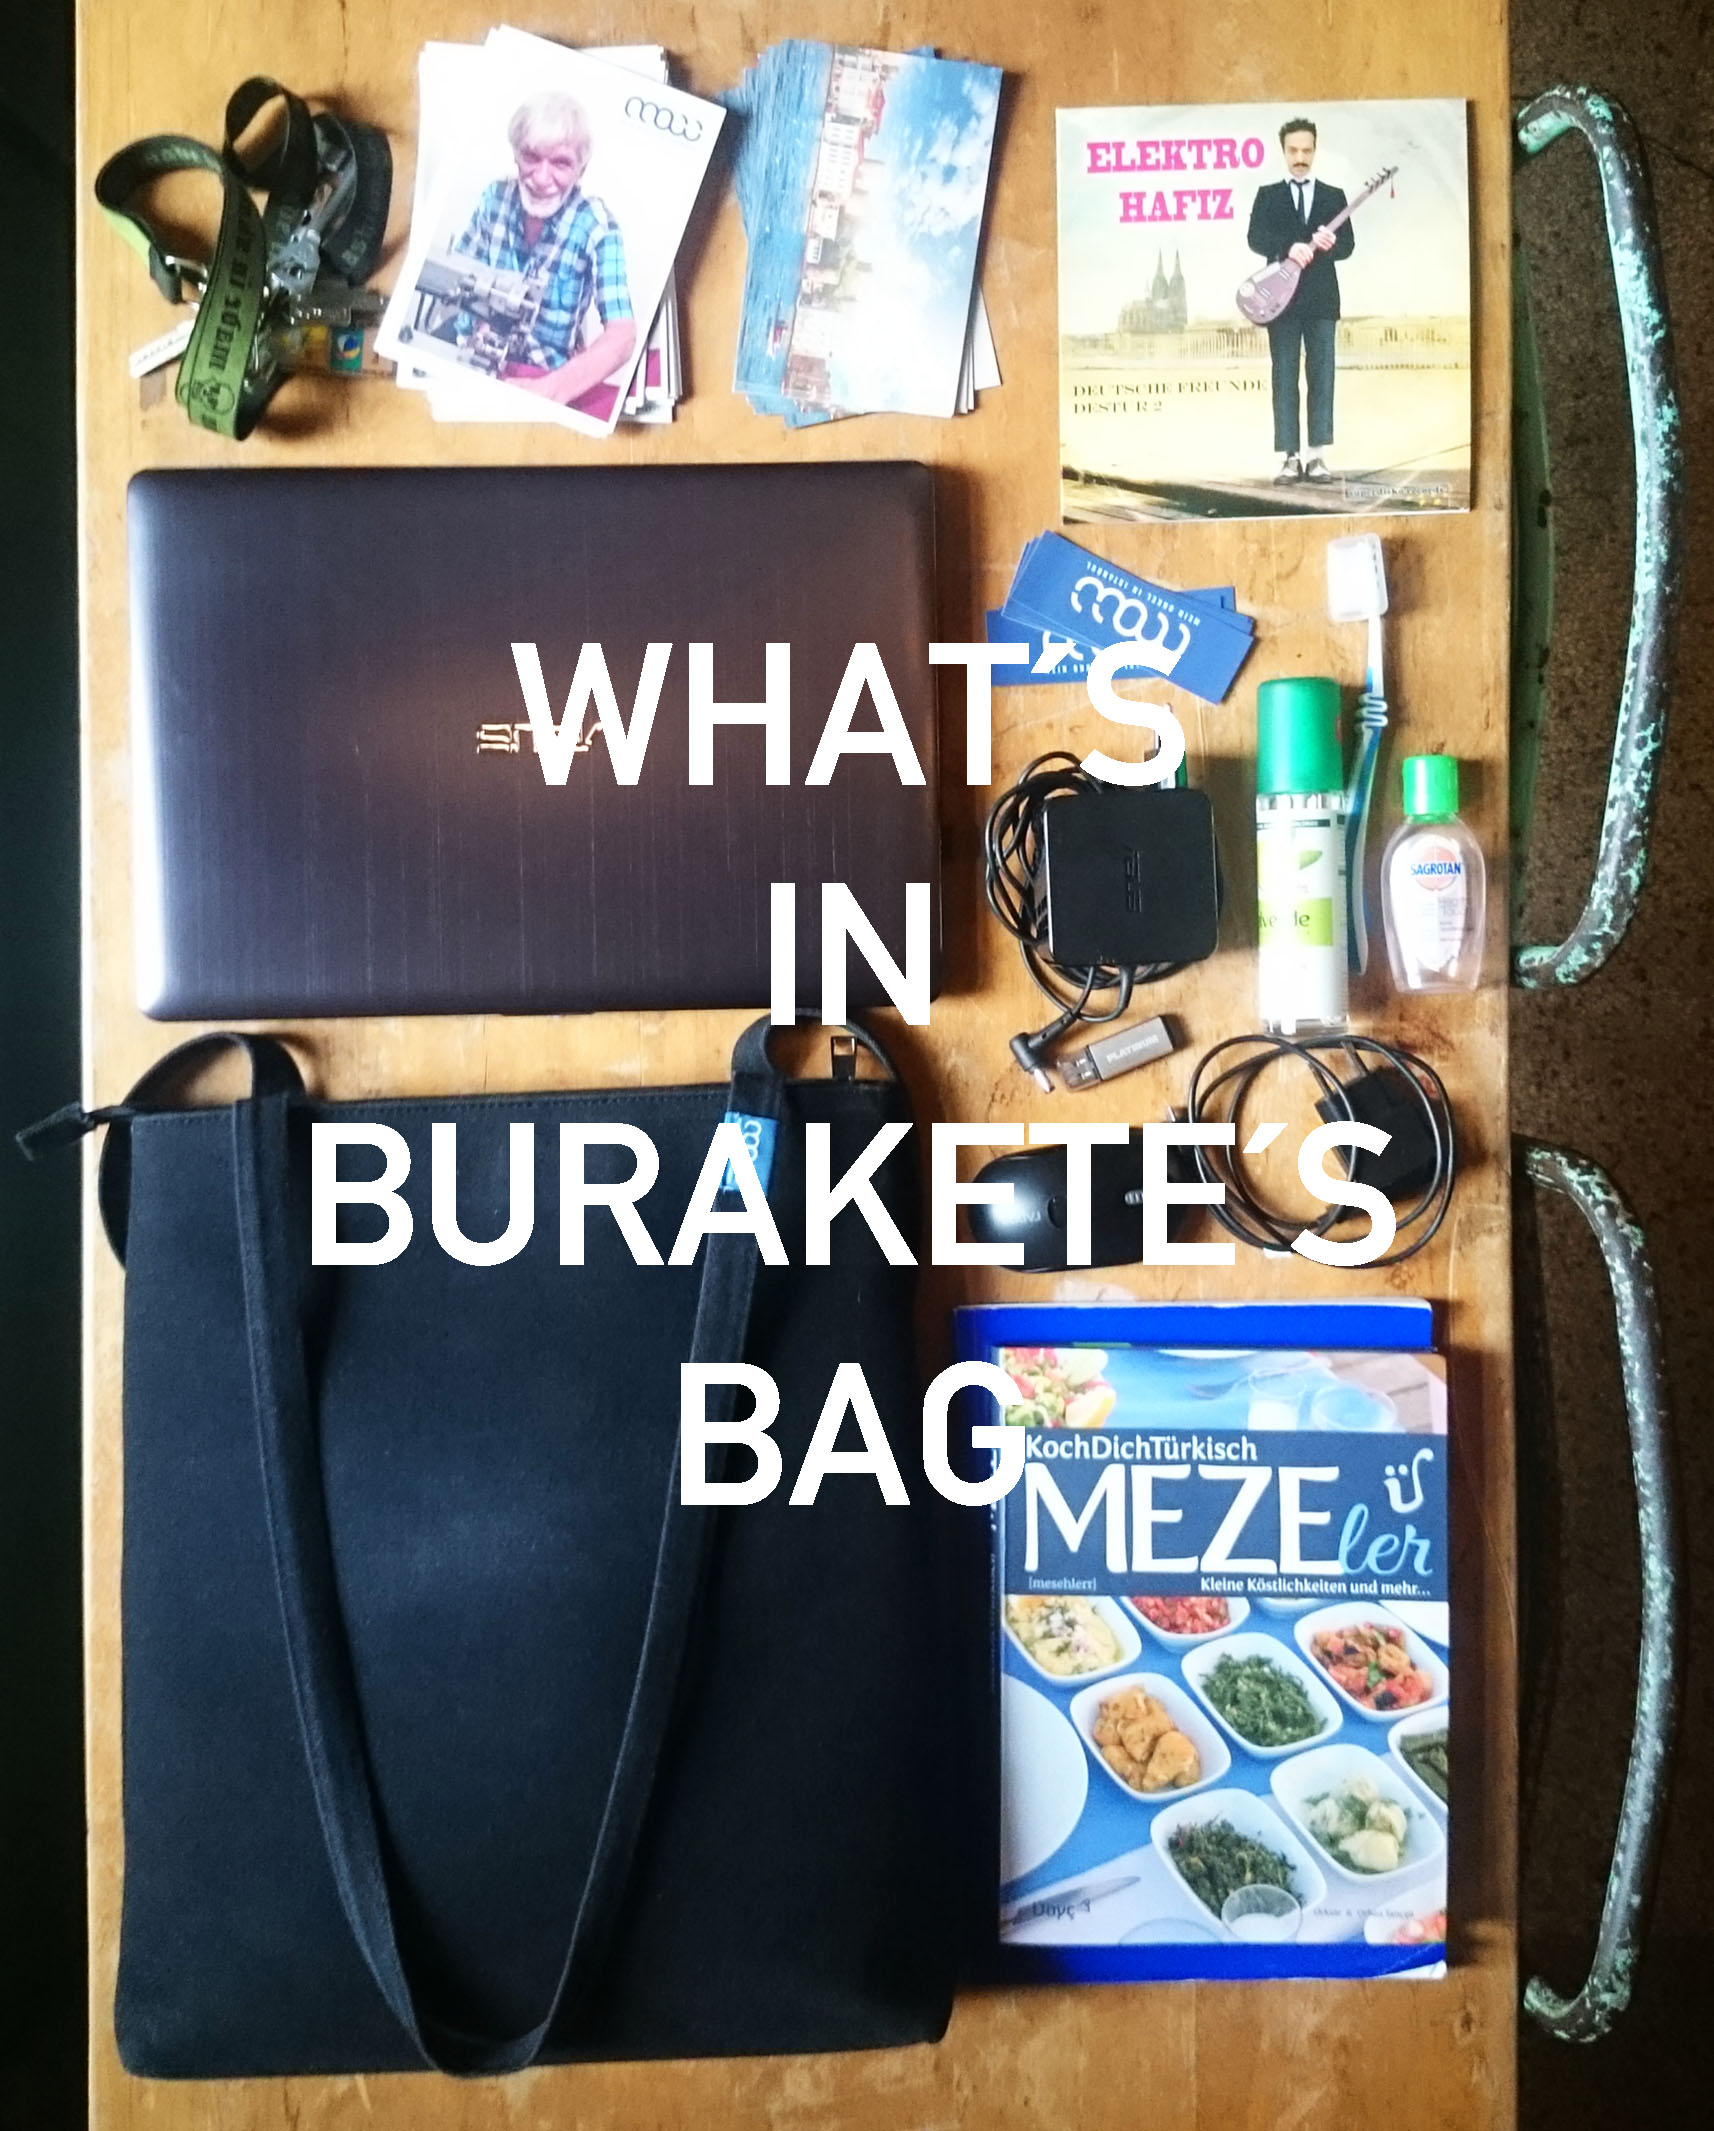 moii whats in buraketes bag